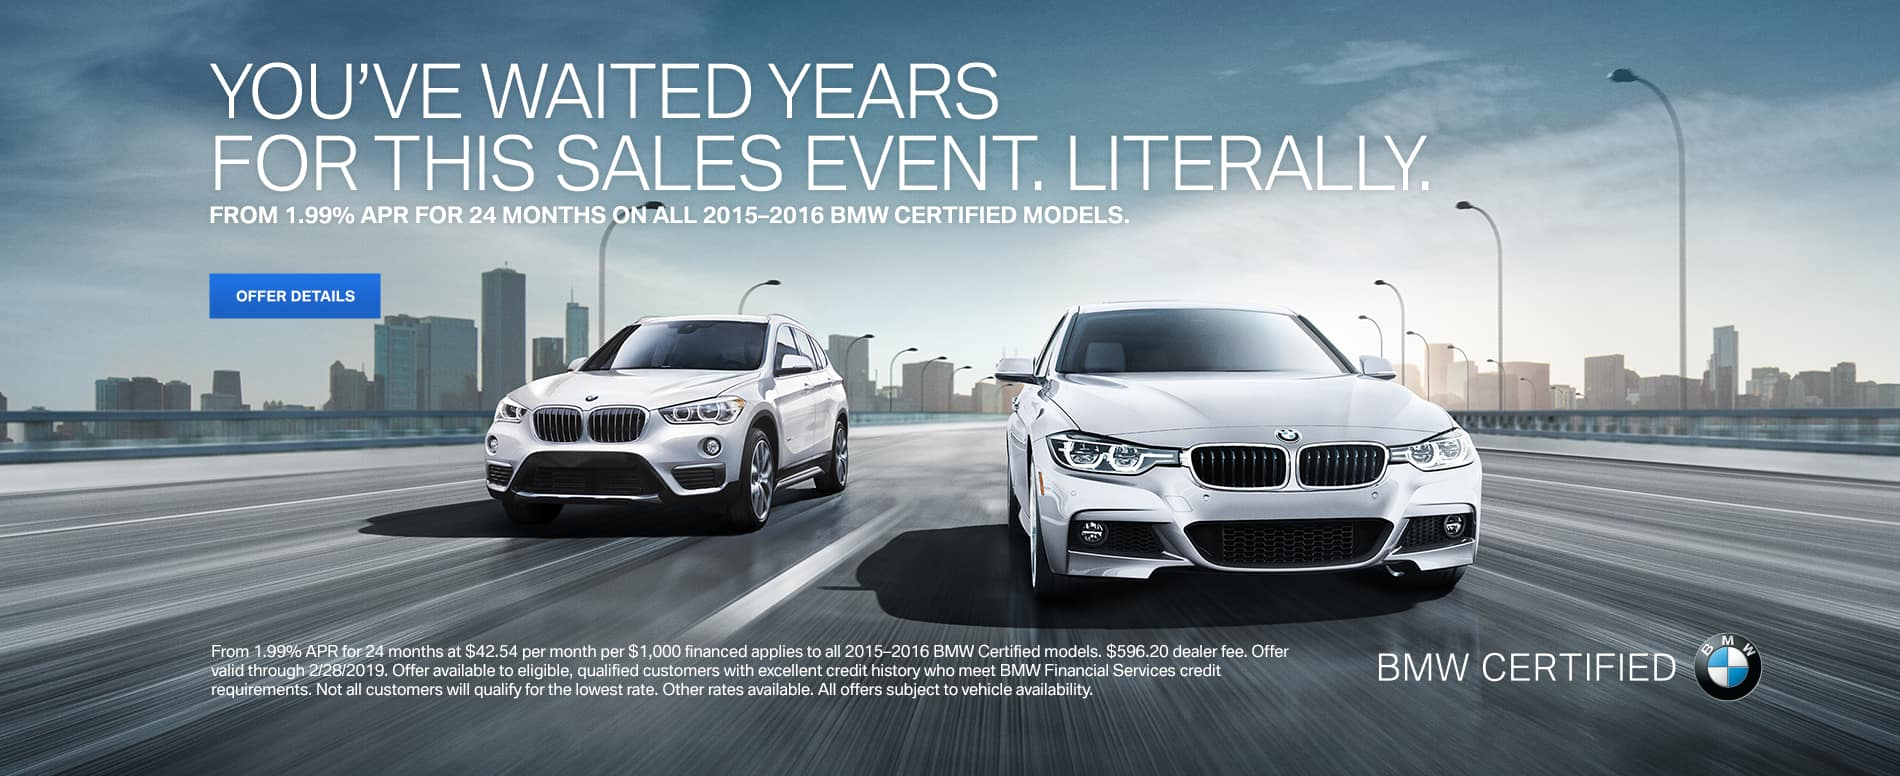 BMW CPO Offer